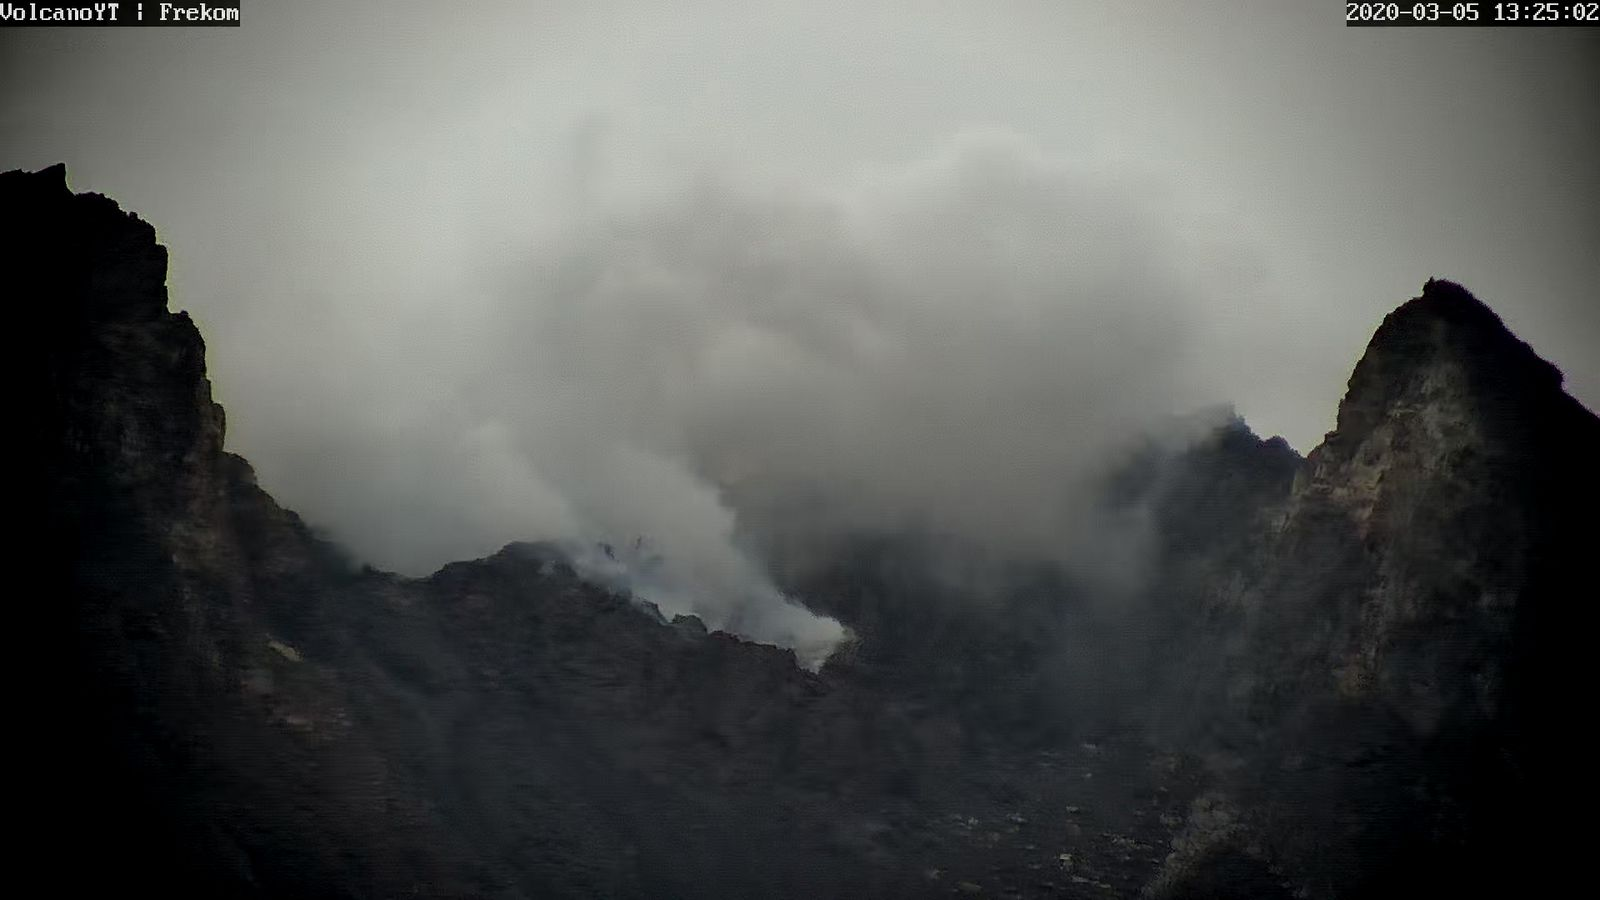 Merapi - the summit of the volcano during a thinning on 05.03.2020 / 13:25 loc. - Doc. VolcanoYT Frekom